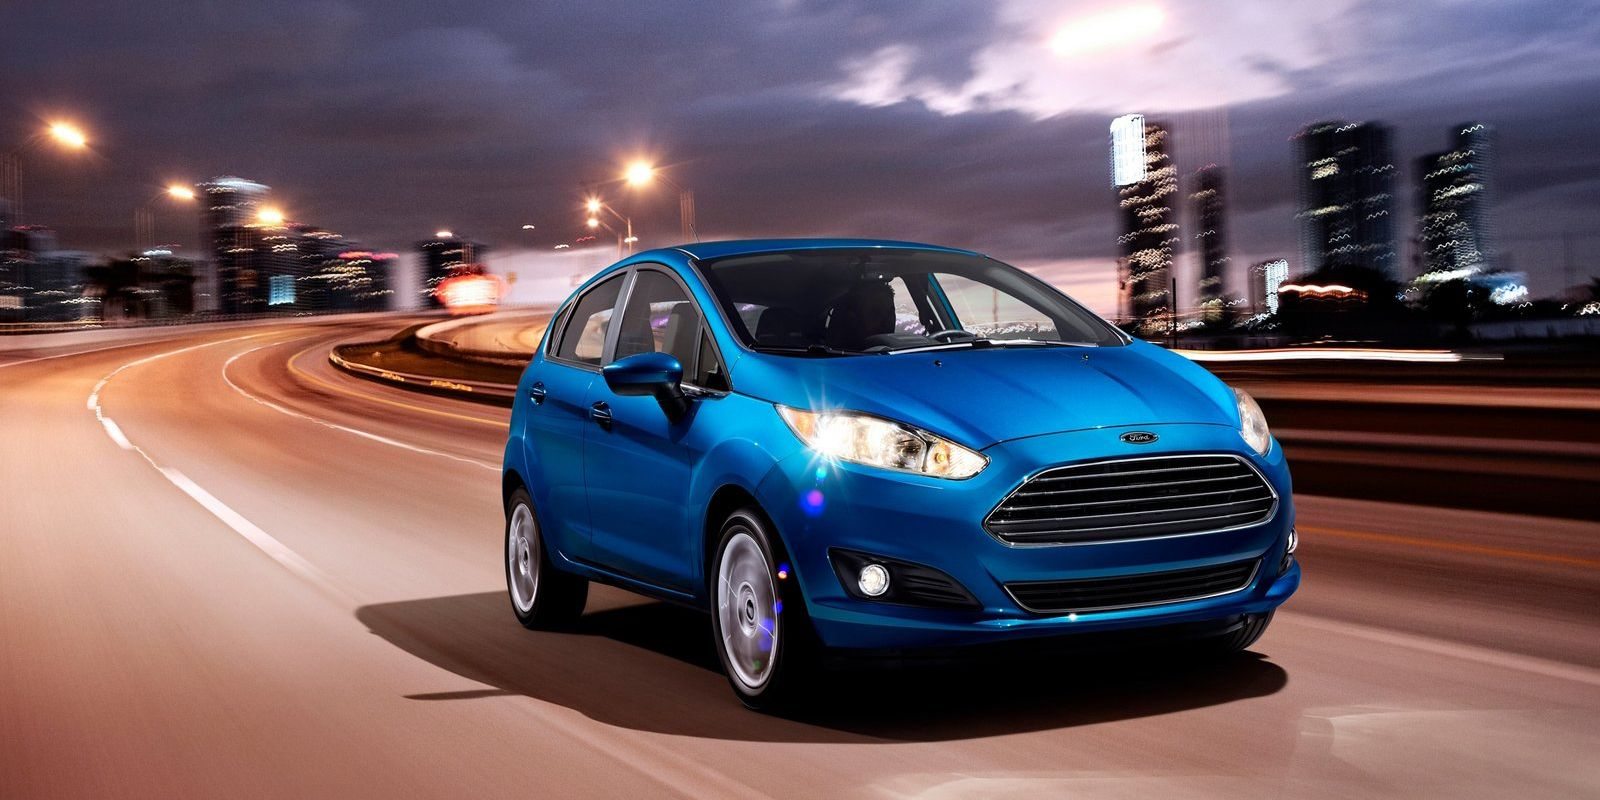 <p>The Fiesta is impressively fun to drive and a looker to boot. It's also damn well equipped and can be had with Ford's excellent 1.0 liter turbo three cylinder. And if you have some more money in the bank, you can get the excellent Fiesta ST hot hatch for less than $22000.</p>